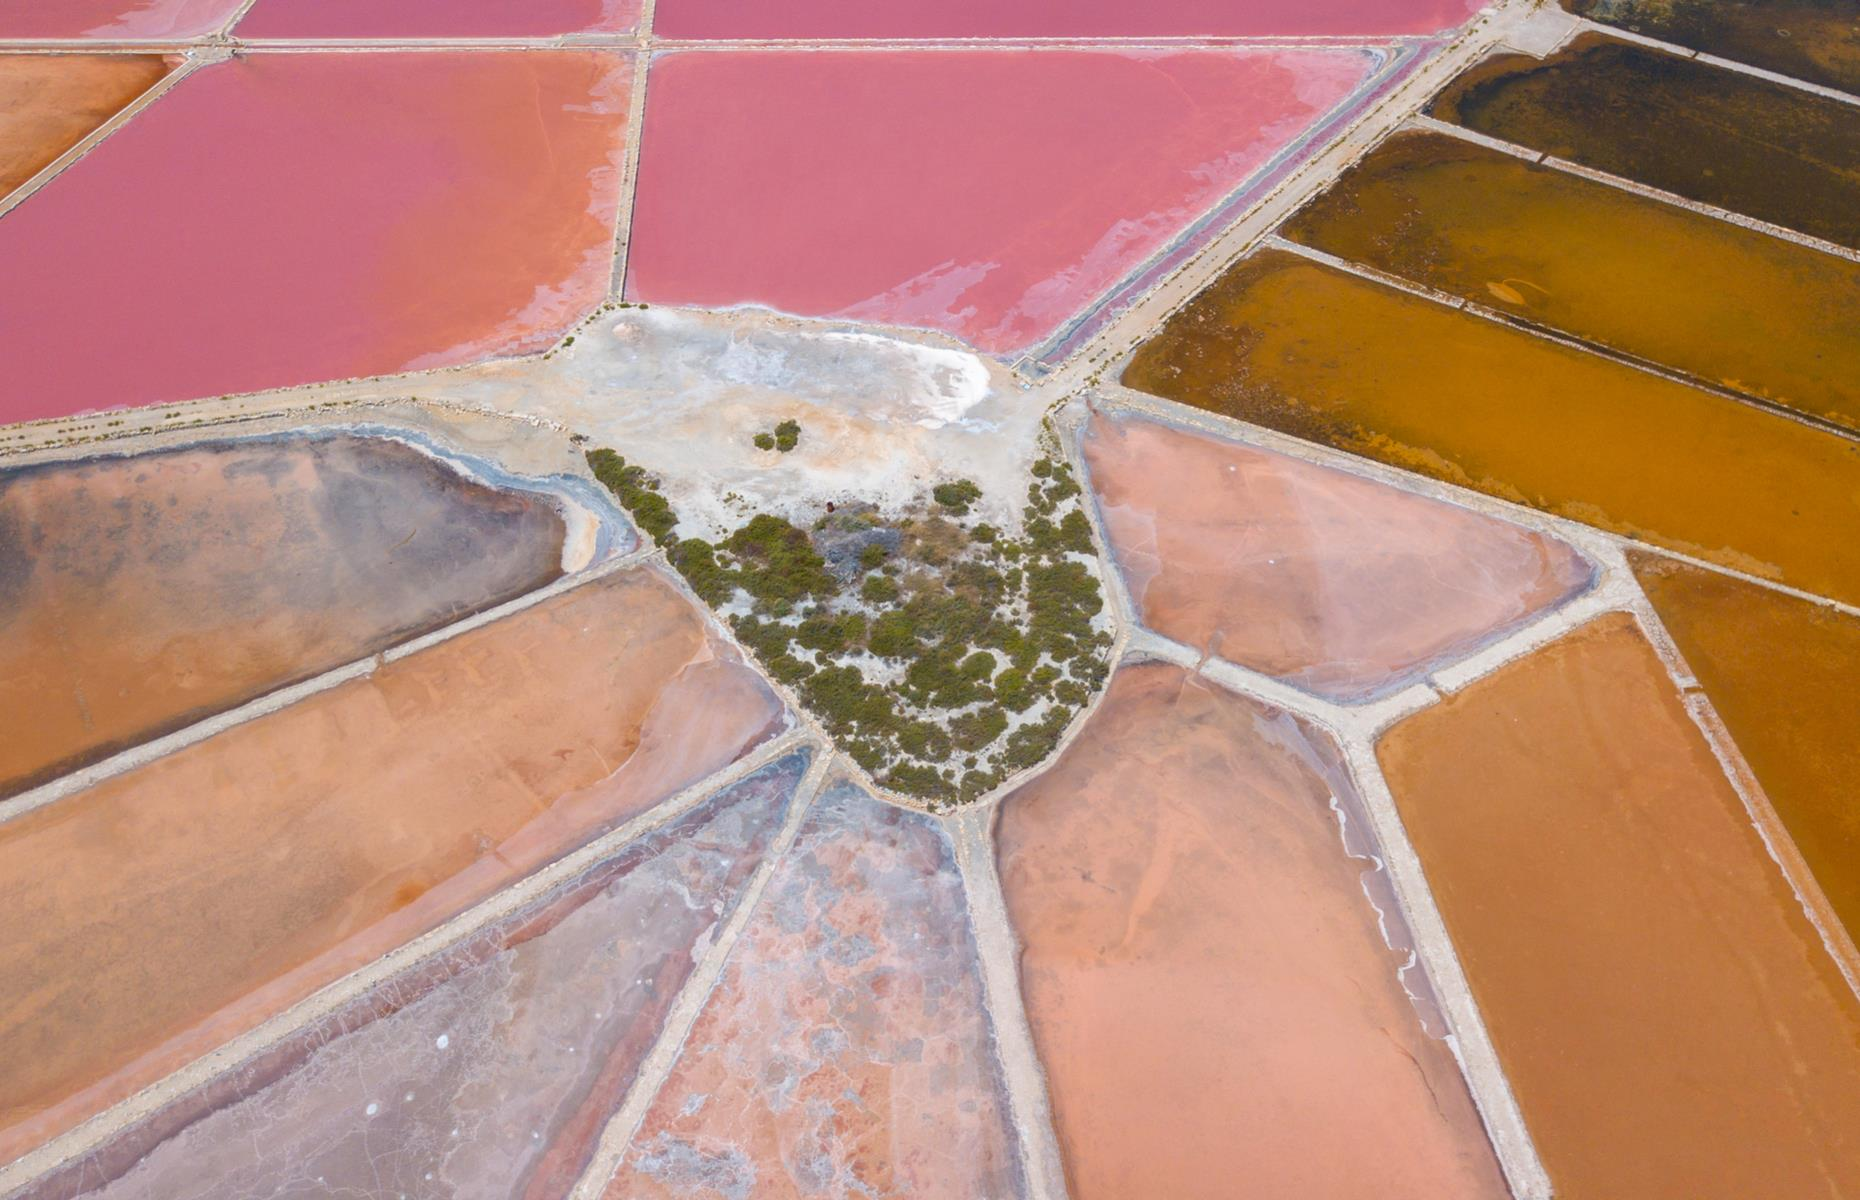 Slide 22 of 43: While it may look like a giant paint palette, this pink landscape is actually made up of salt flats and is situated in the seaside resort of Colonia de Sant Jordi in Mallorca's Ses Salines district. Salt is a major export here and a great source of local pride – a symbol of a salt mound even appears on the area's coat of arms. The colors (earthy pink, deep tan and rich nude) pop when captured from up high.